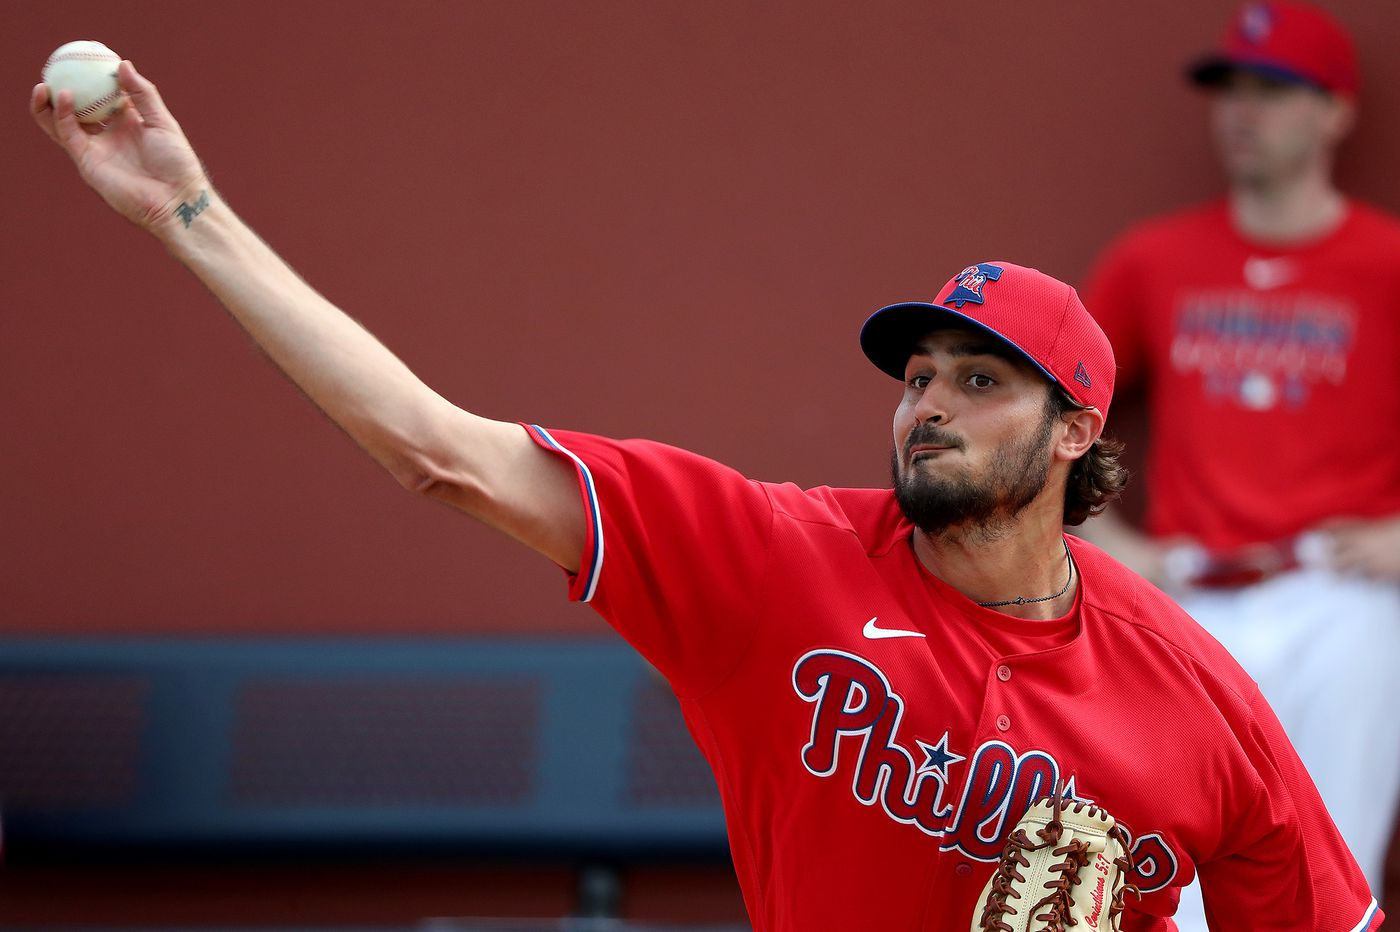 Phillies pitcher Zach Eflin says he's no longer trying to be someone he's not